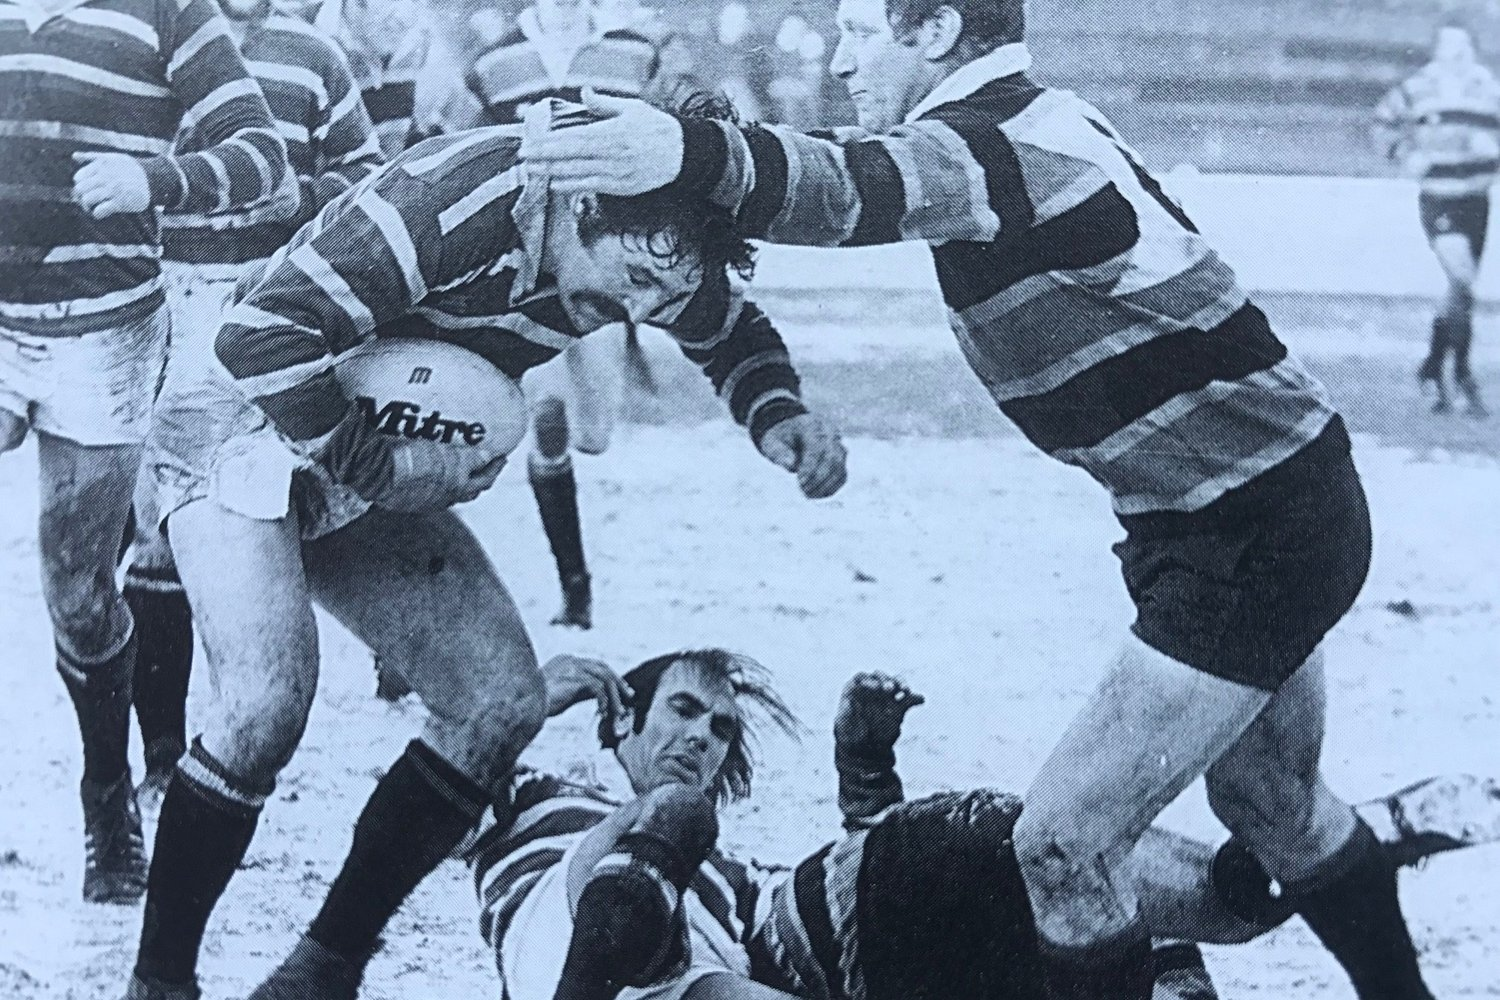 Tigers Robin Cowling takes on Saints in the first round of 'that' 1979 John Player Cup run